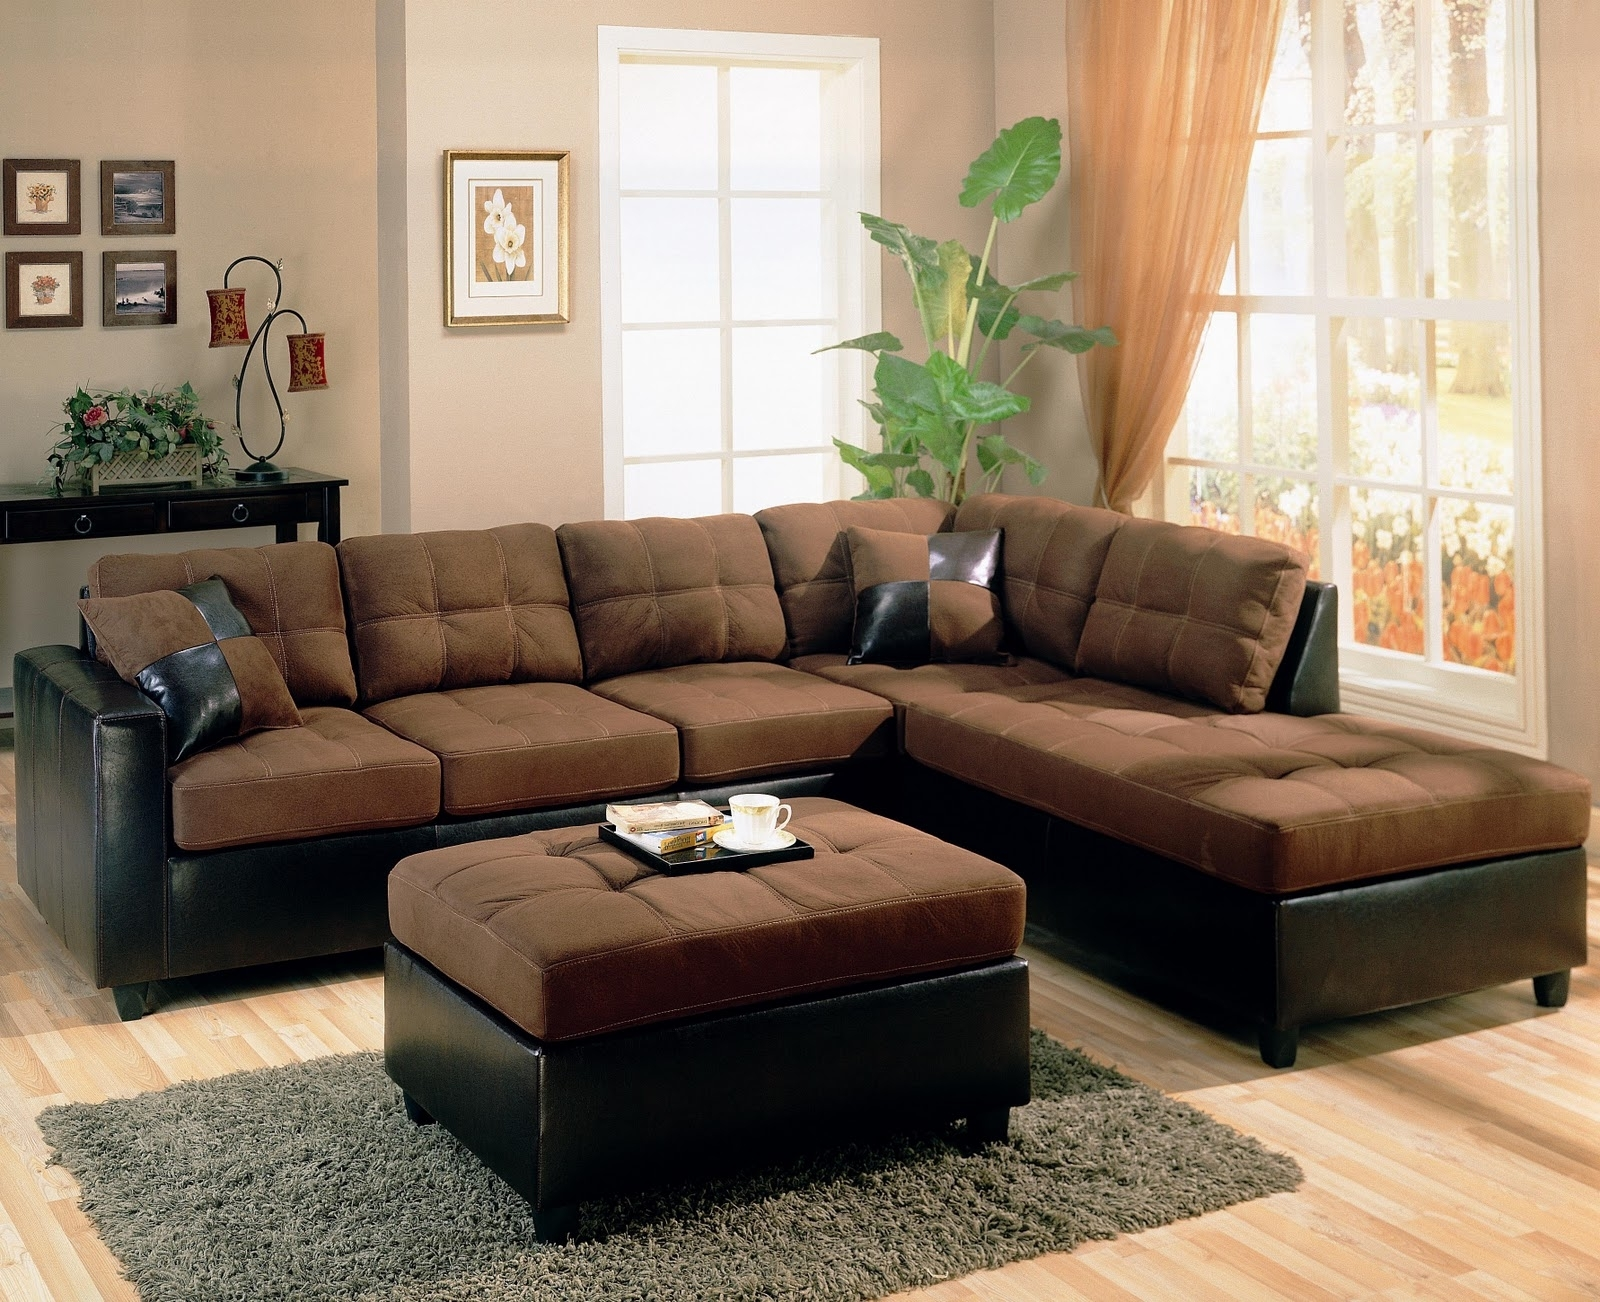 Royal Furniture Outlet Intended For Royal Furniture Sectional Sofas (View 5 of 15)